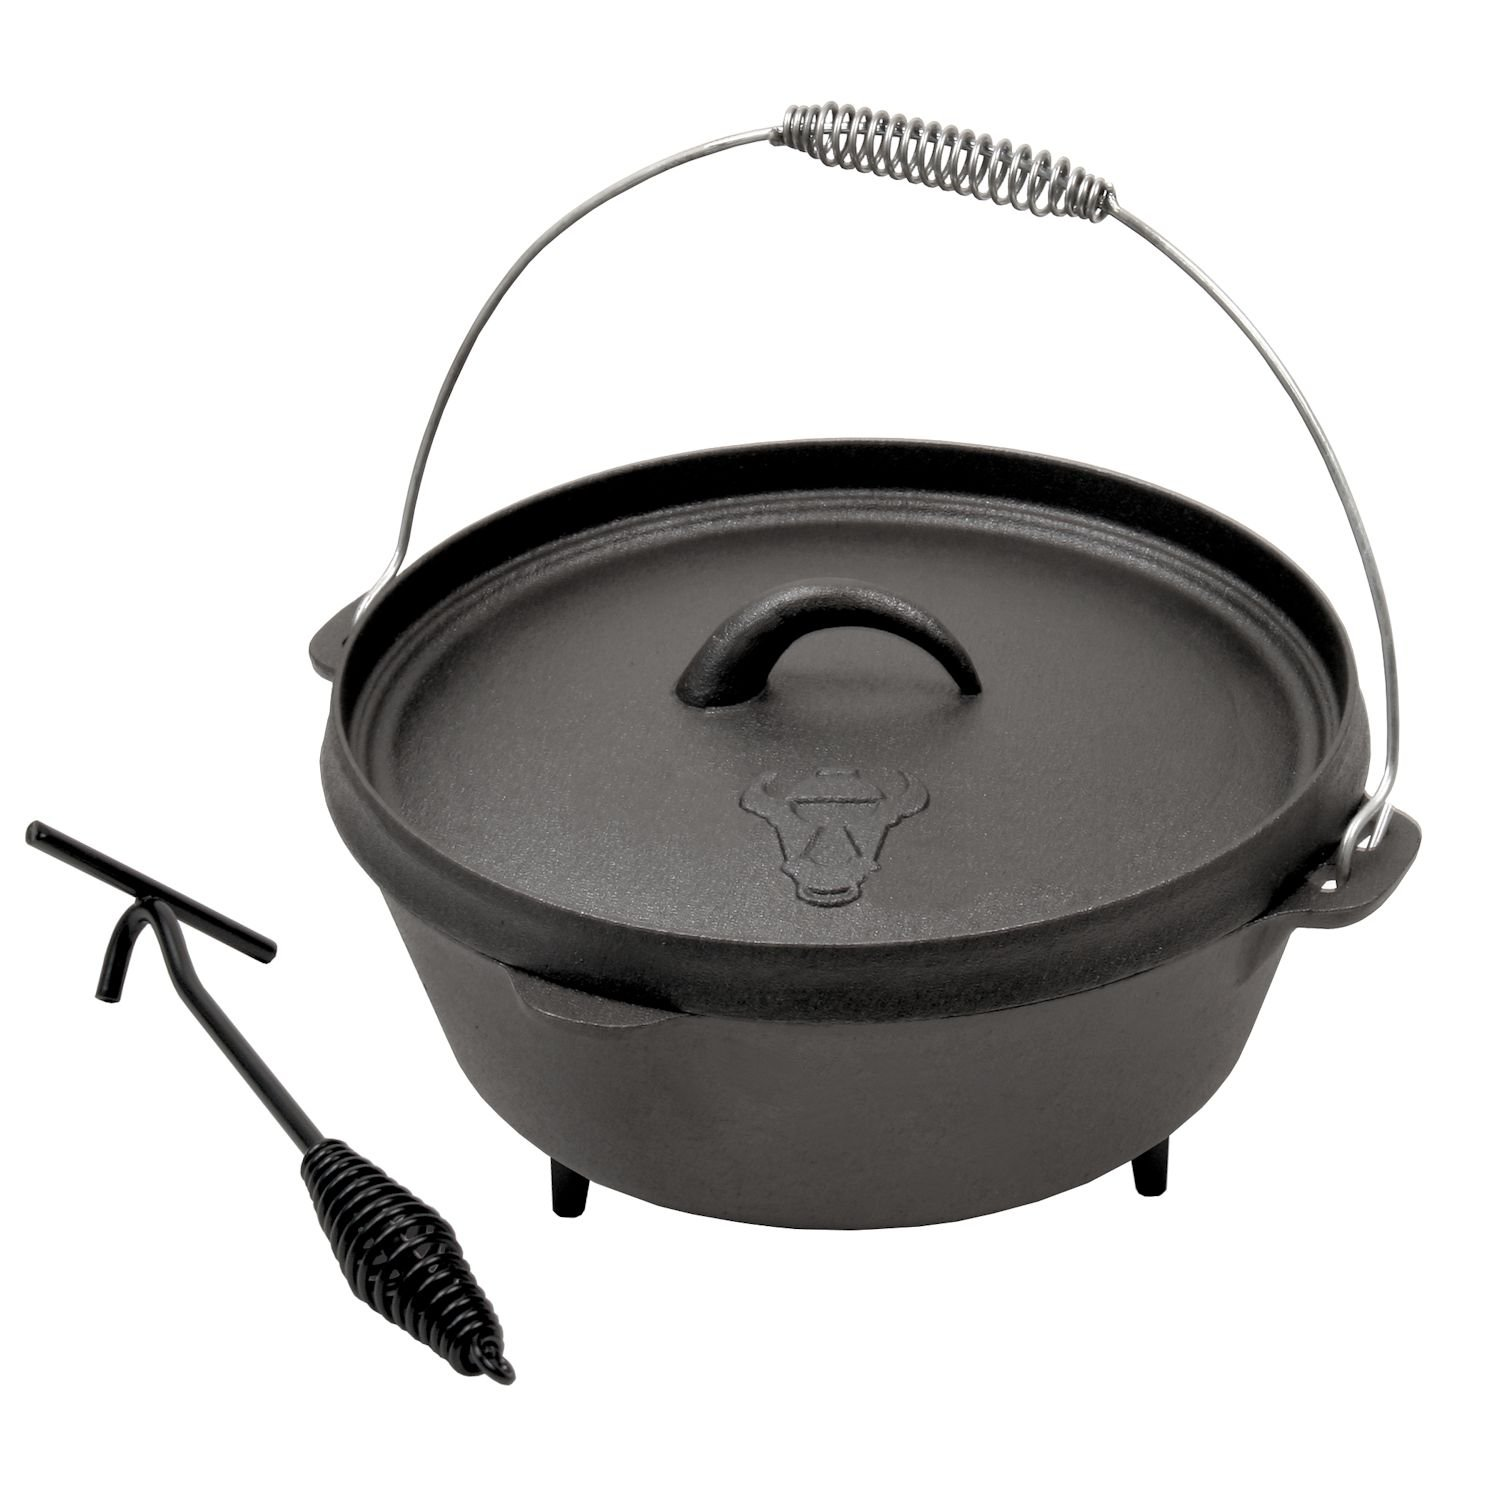 Dutch Oven DO6 Cast Iron Camping Cooking Pot Pre-seasoned CS-Trading